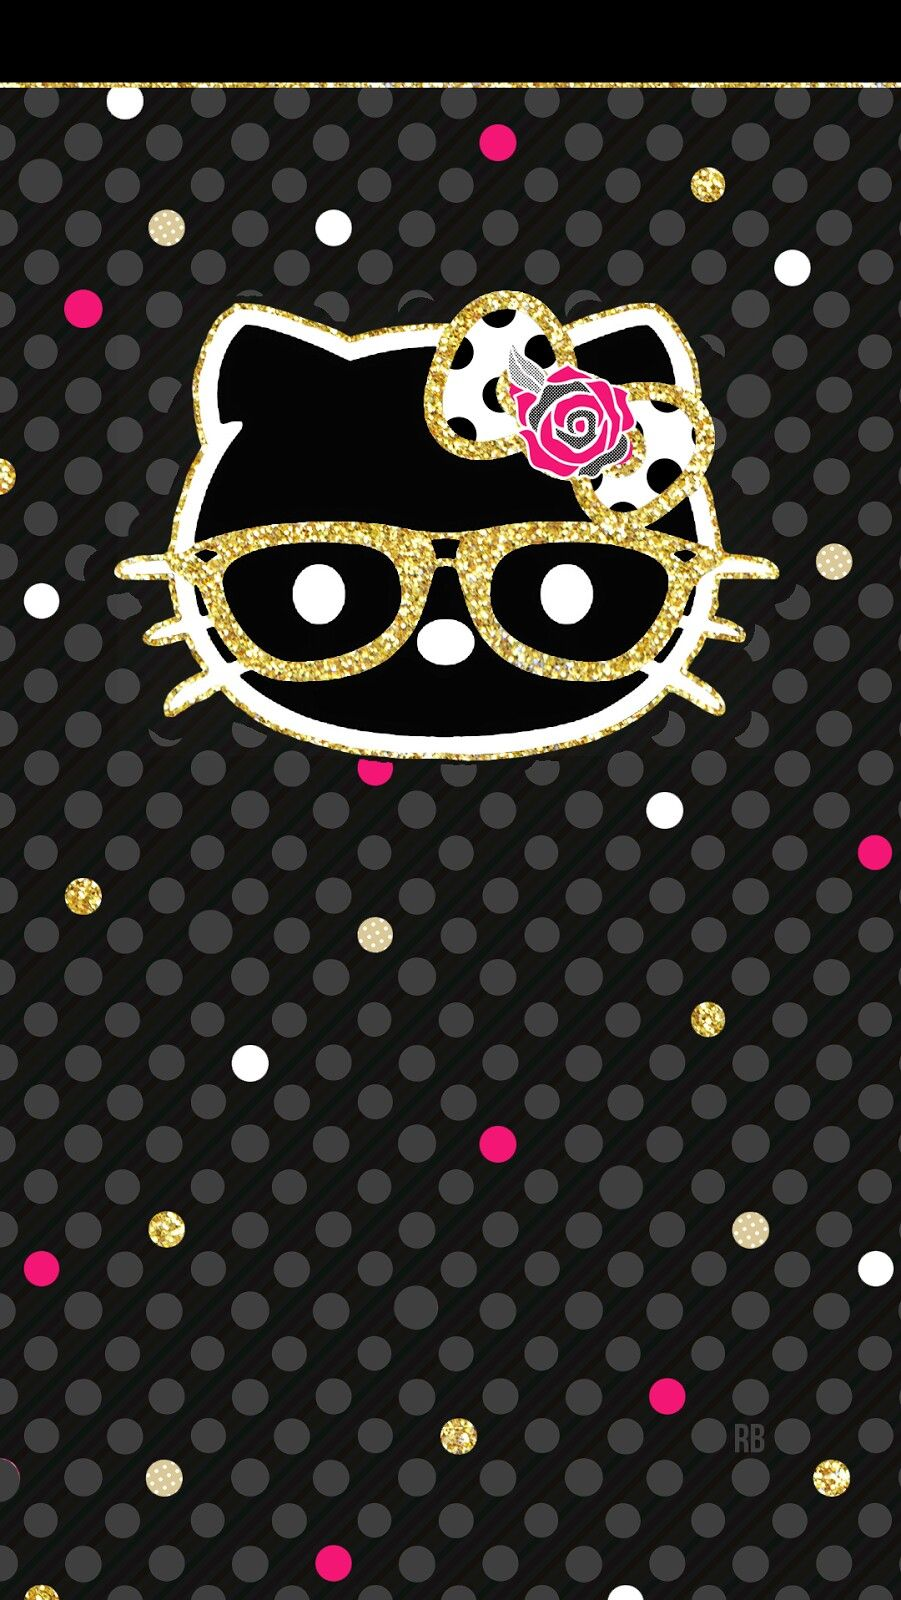 Most Inspiring Wallpaper Hello Kitty Samsung Galaxy - fd7bfc86e0fdd41f5a653b658f1b106e  Photograph_804316.jpg